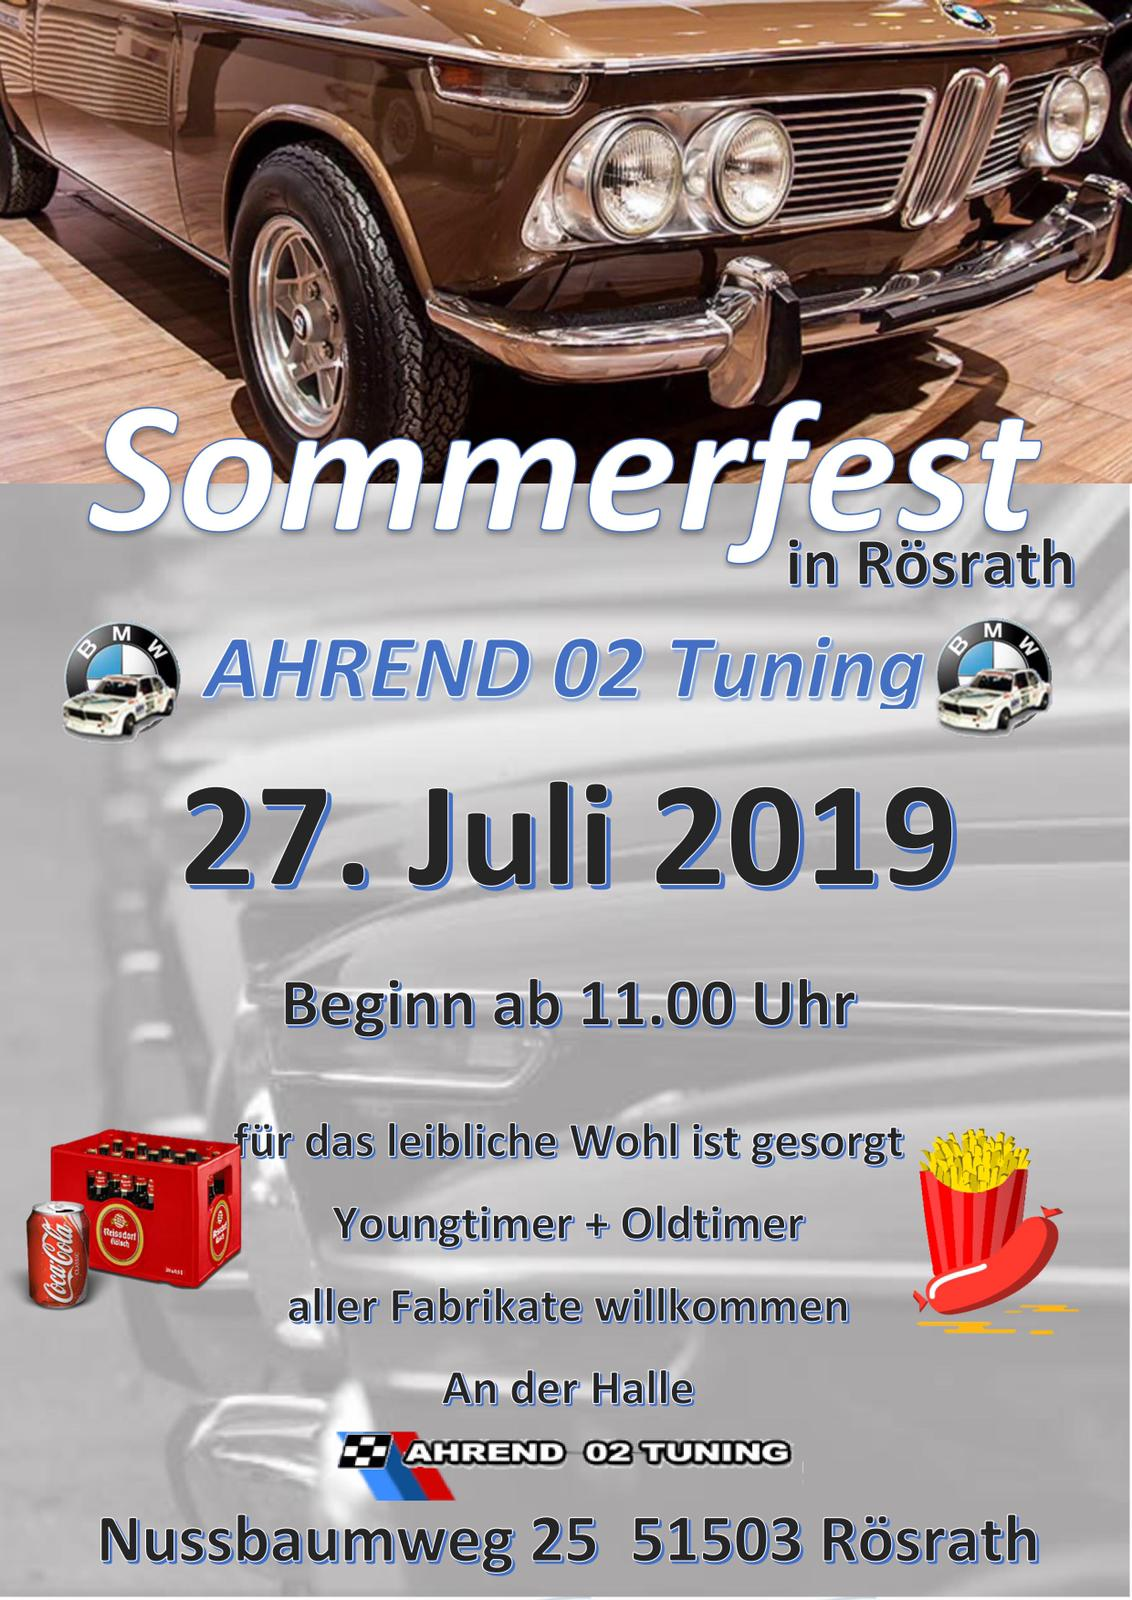 Ahrend 02 Tuning Sommerfest 2019 Rösrath BMW02 Bmw 2002 BMW Klassiker Oldtimer Youngtimer Classic cars classiccars